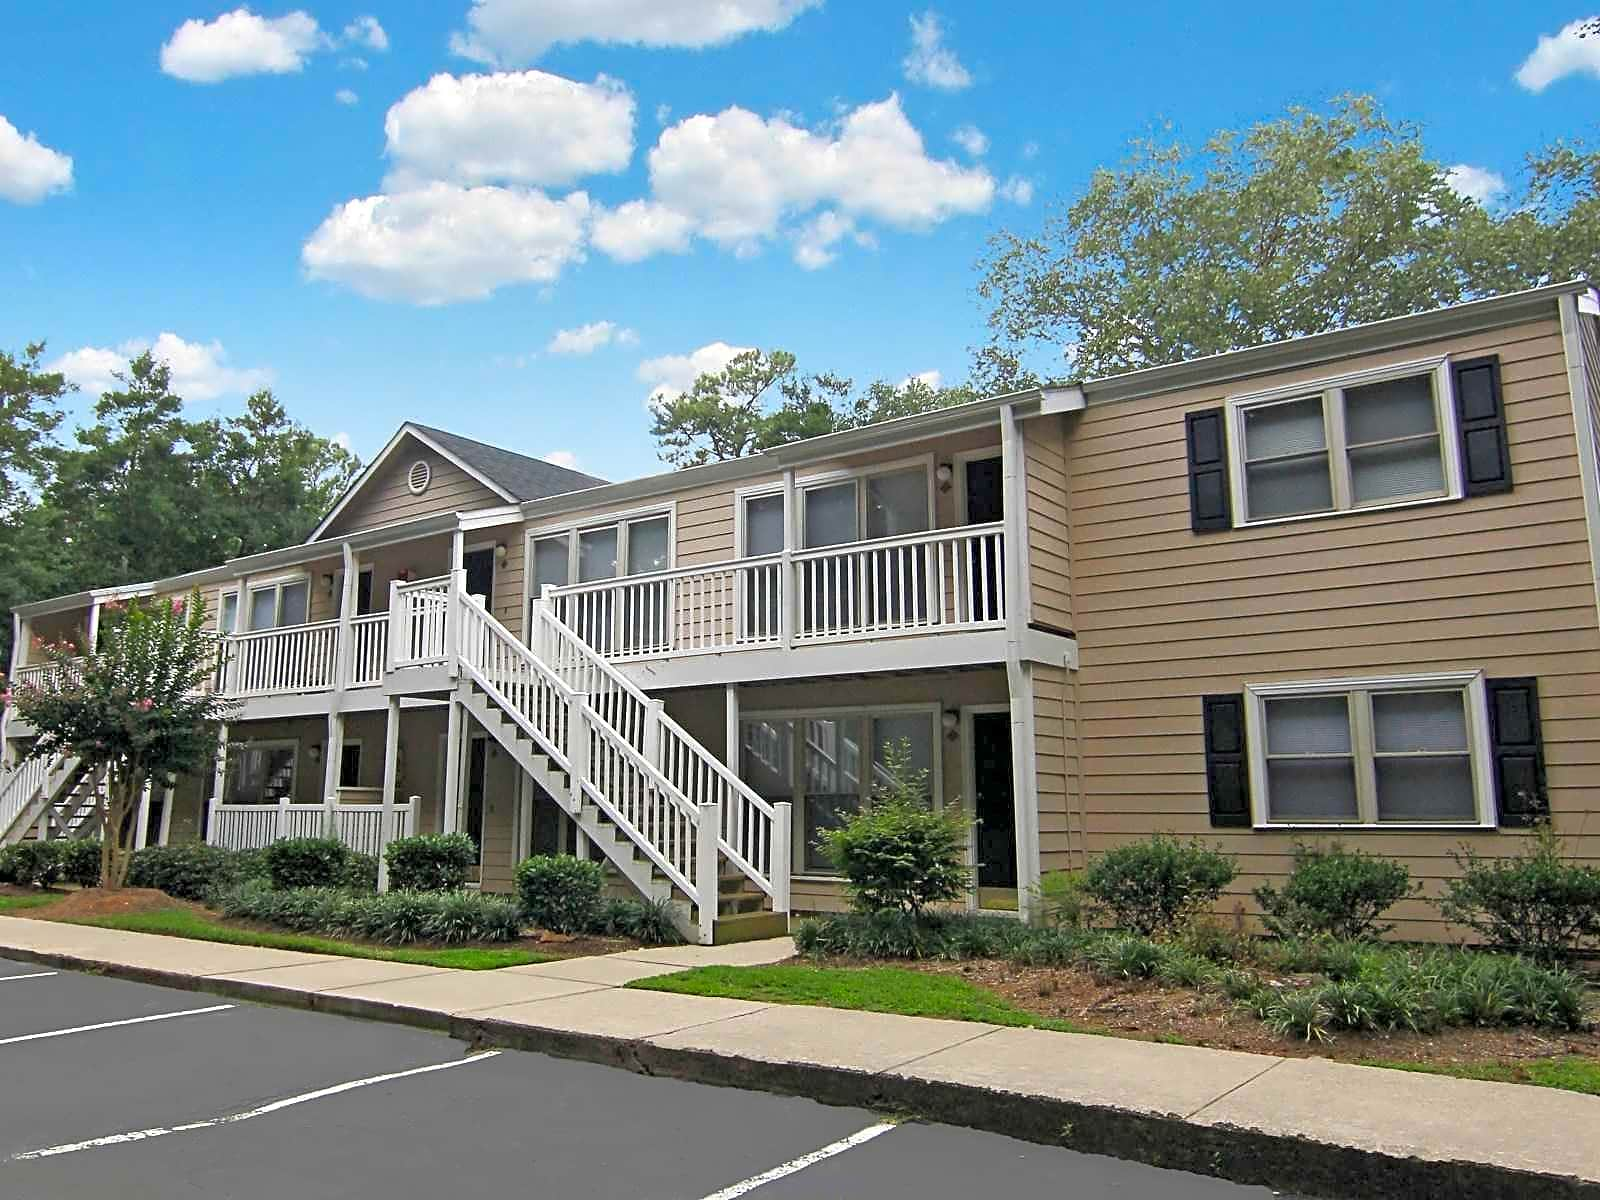 Photo: Raleigh Apartment for Rent - $610.00 / month; 1 Bd & 1 Ba